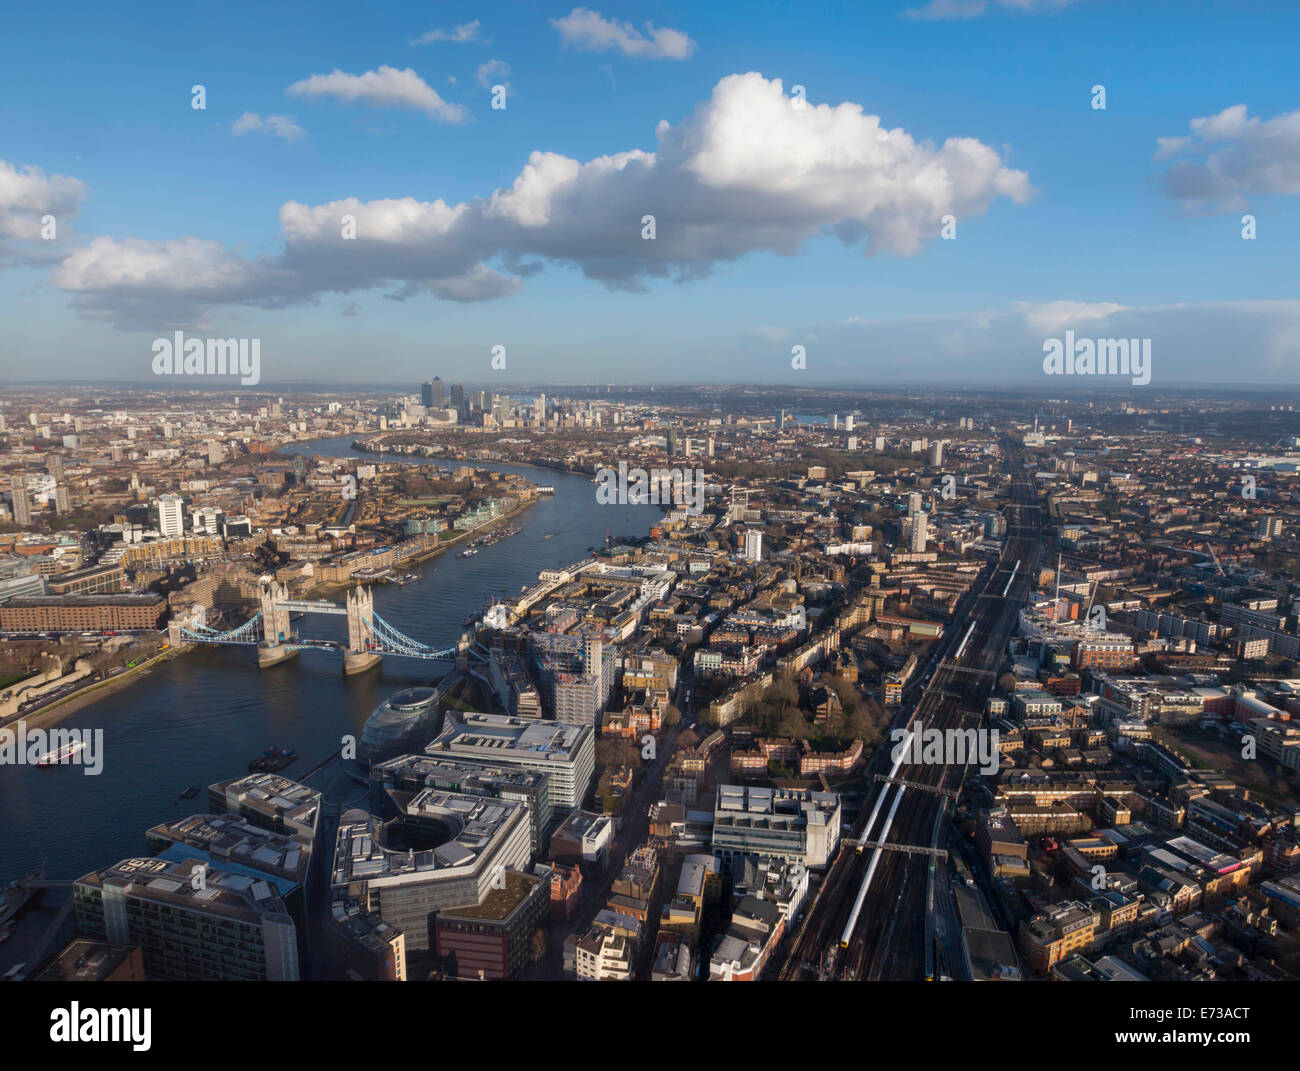 Aerial cityscape showing River Thames, Tower Bridge and railway tracks, London, England, United Kingdom, Europe - Stock Image